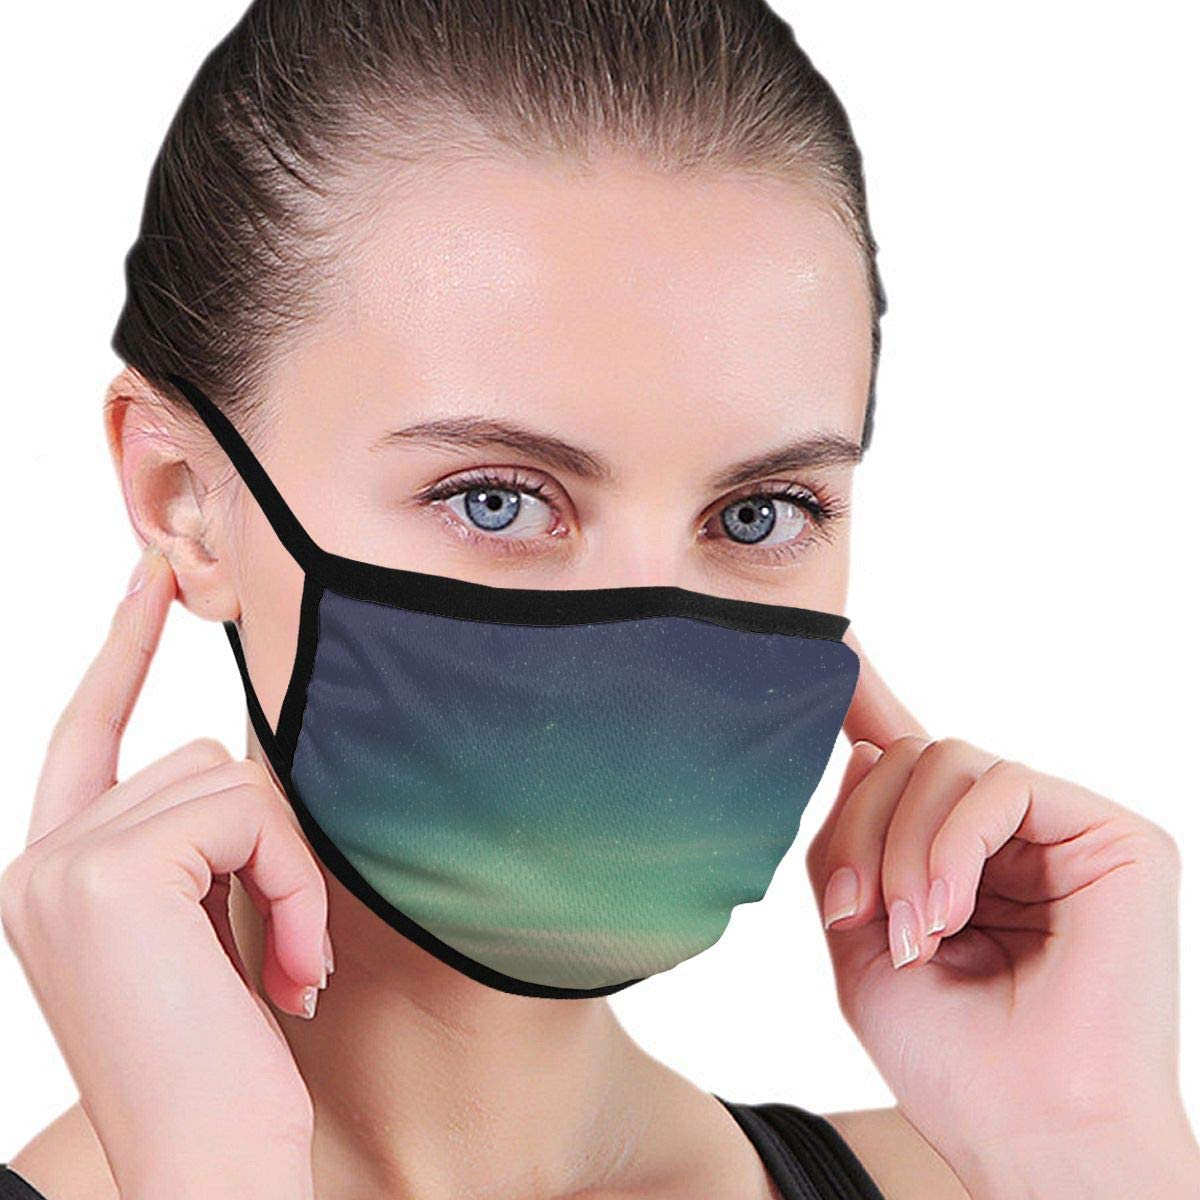 Wehoiweh Night Dust Prevention Face Cover Mouth Cover Bandana Cool Lightweight